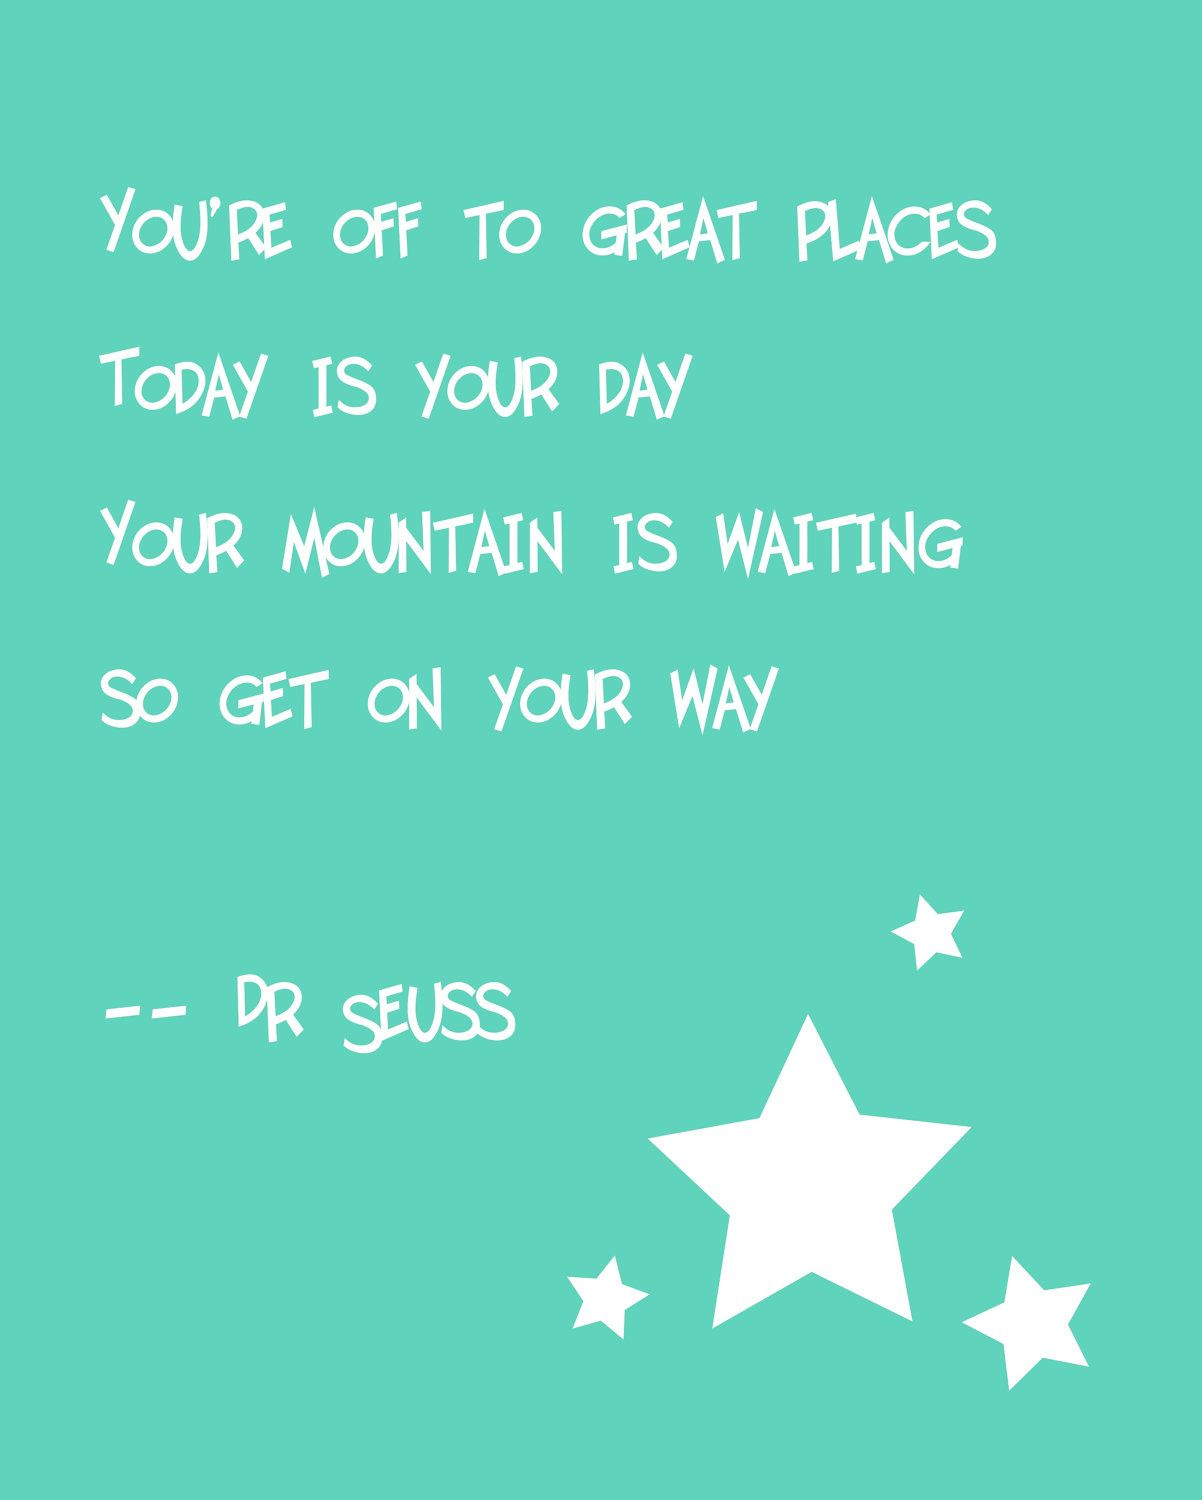 dr seuss quote baby love xo dr seuss interesting dr seuss quote